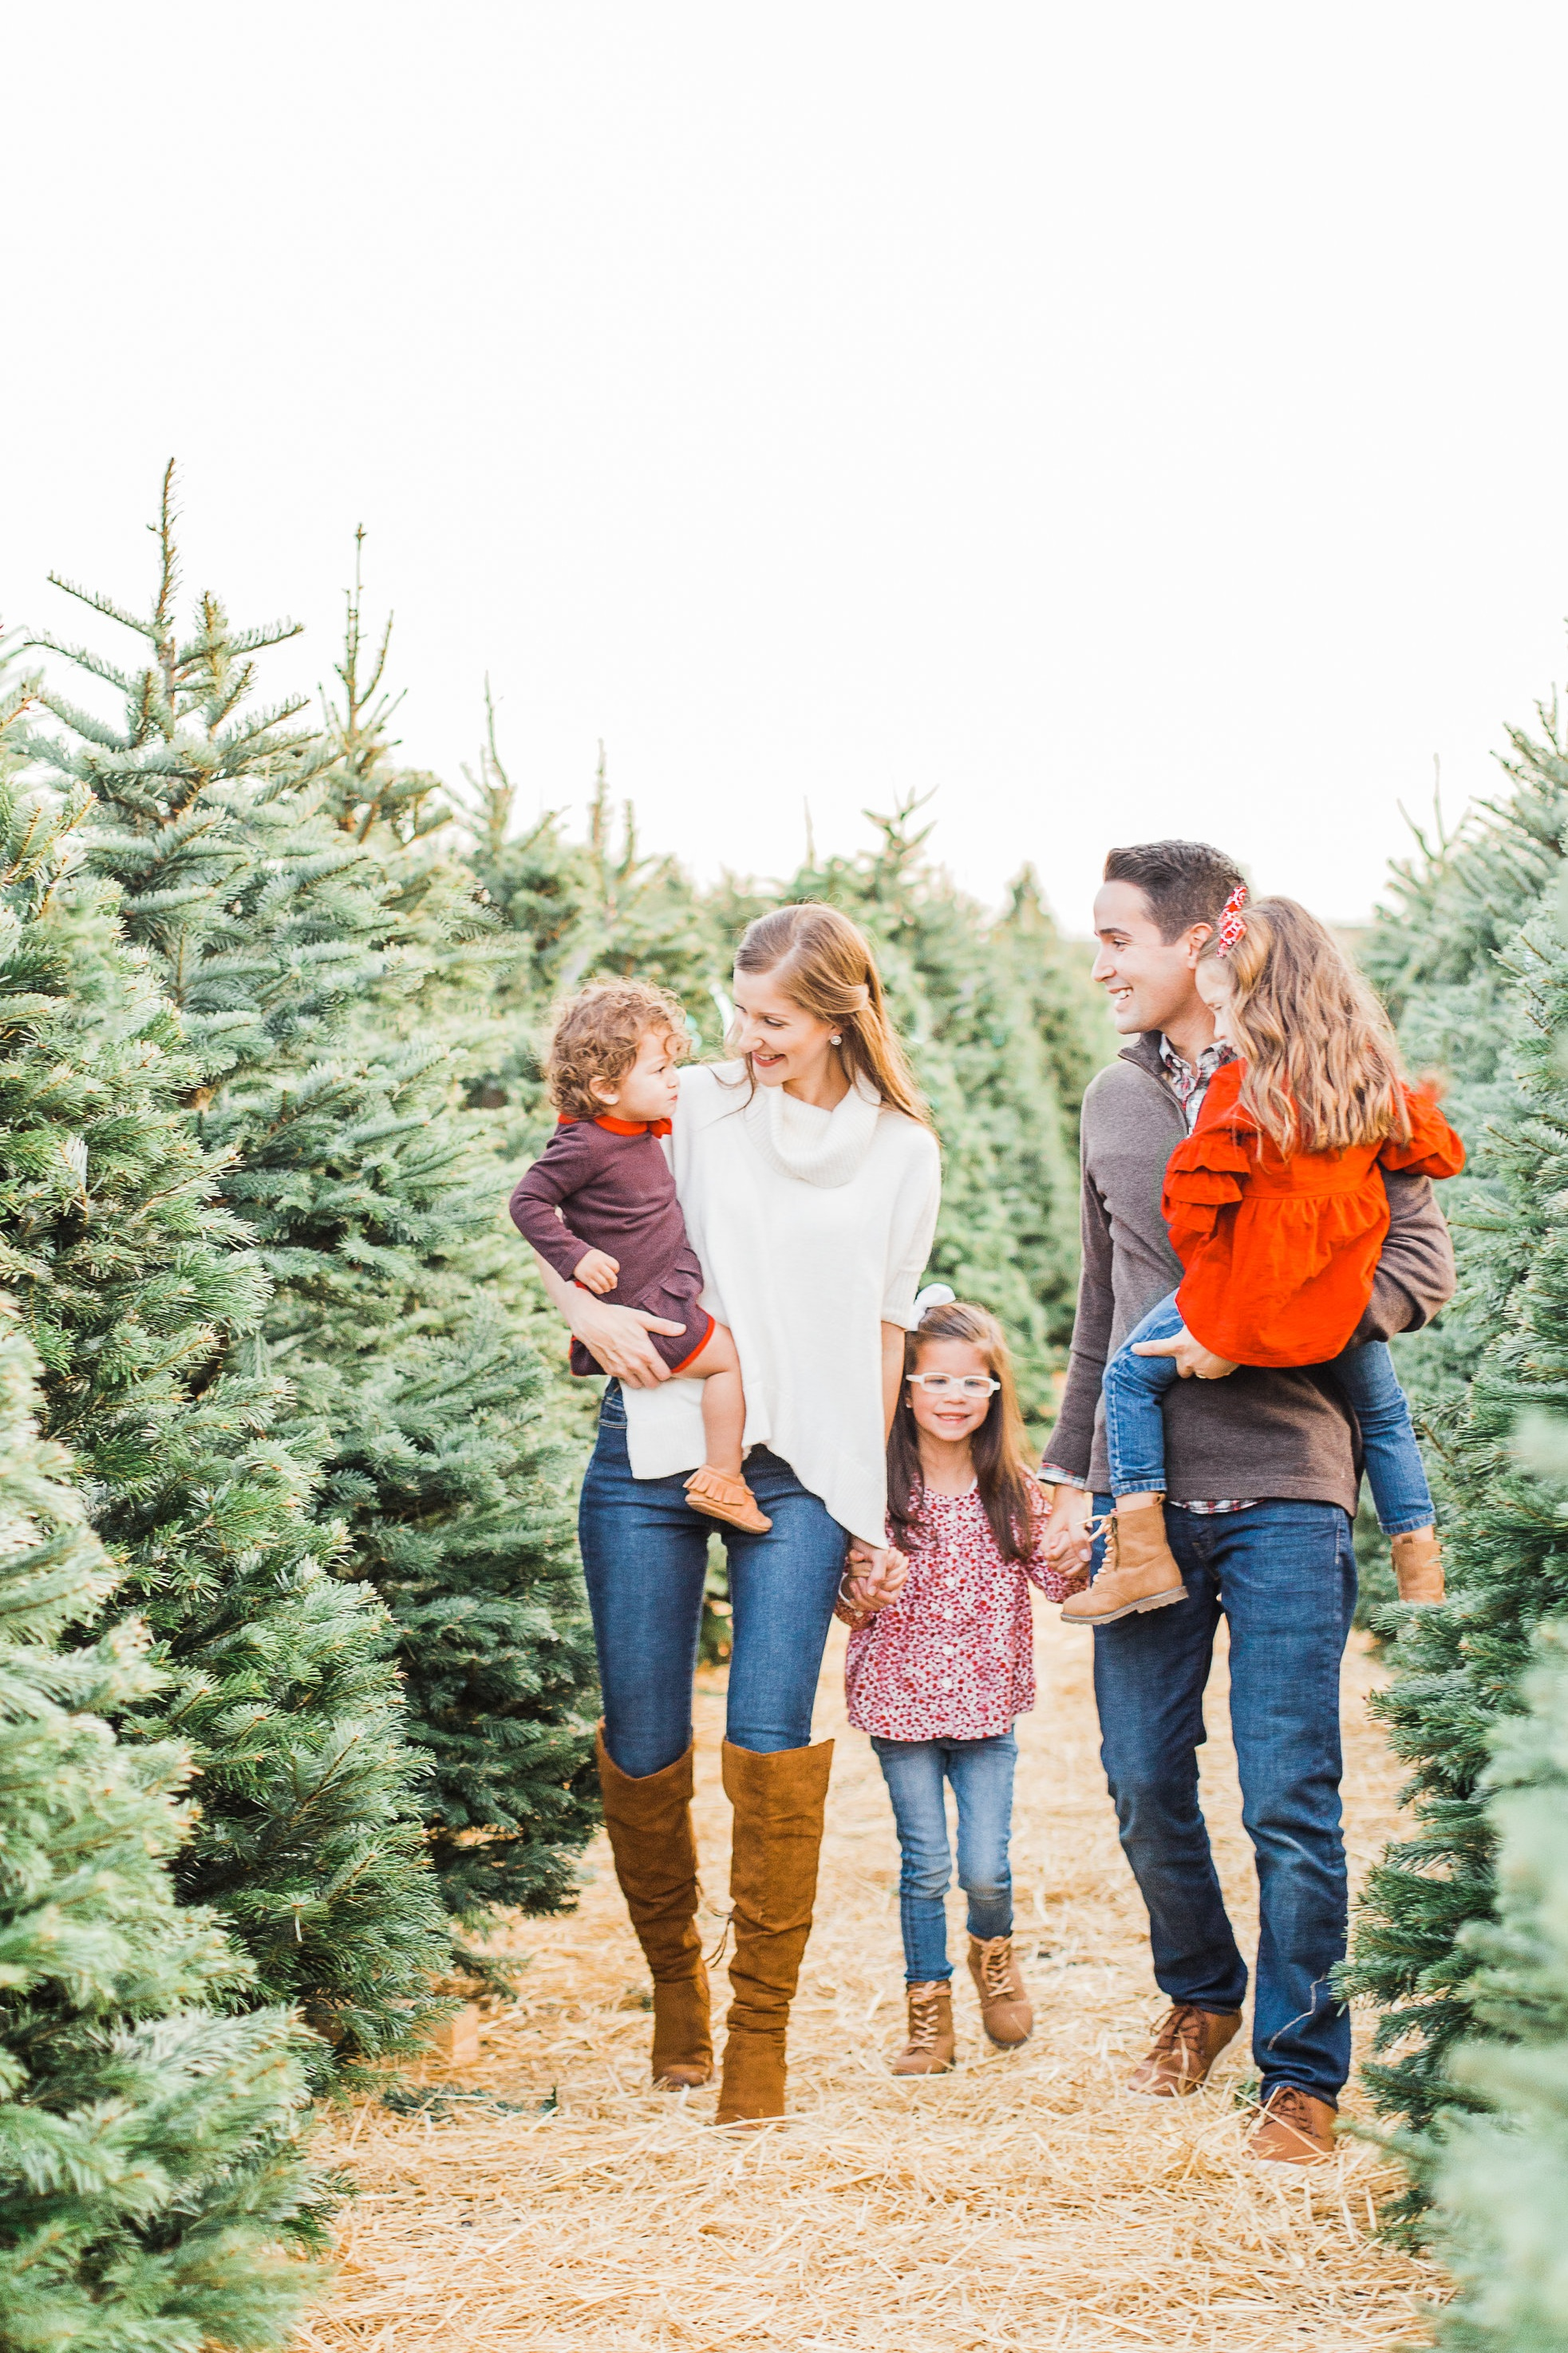 Tree Farm Minis - December 7thAlpine$215 + tax20 minutes10-15+ images (guaranteed amount but will give more if there is more)Times available (all in pm): 2:15, 2:40, 3:05, 3:30